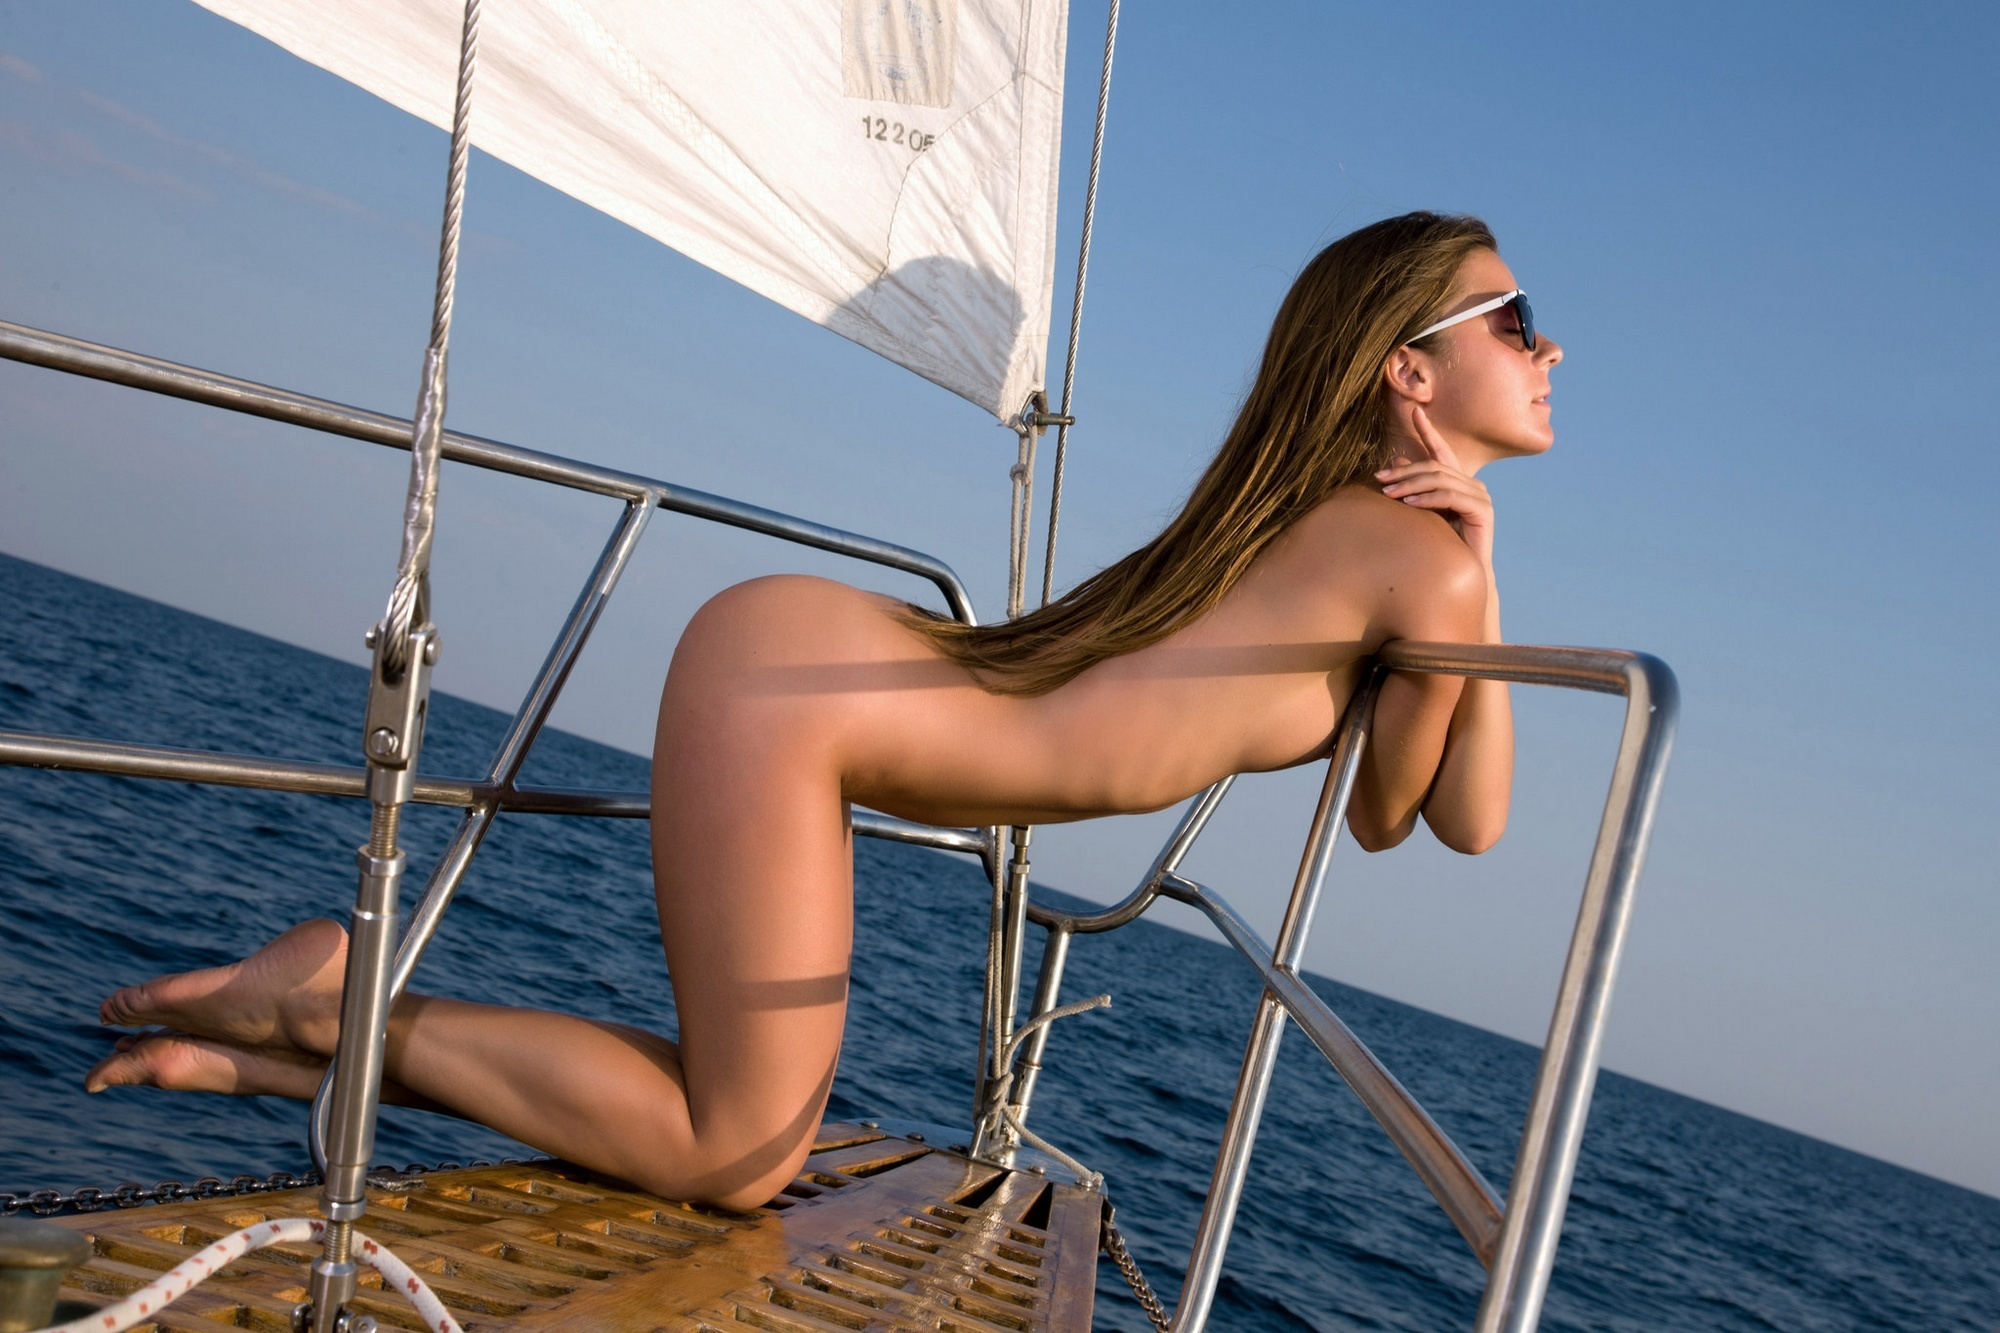 A first time bare necessities nude cruise